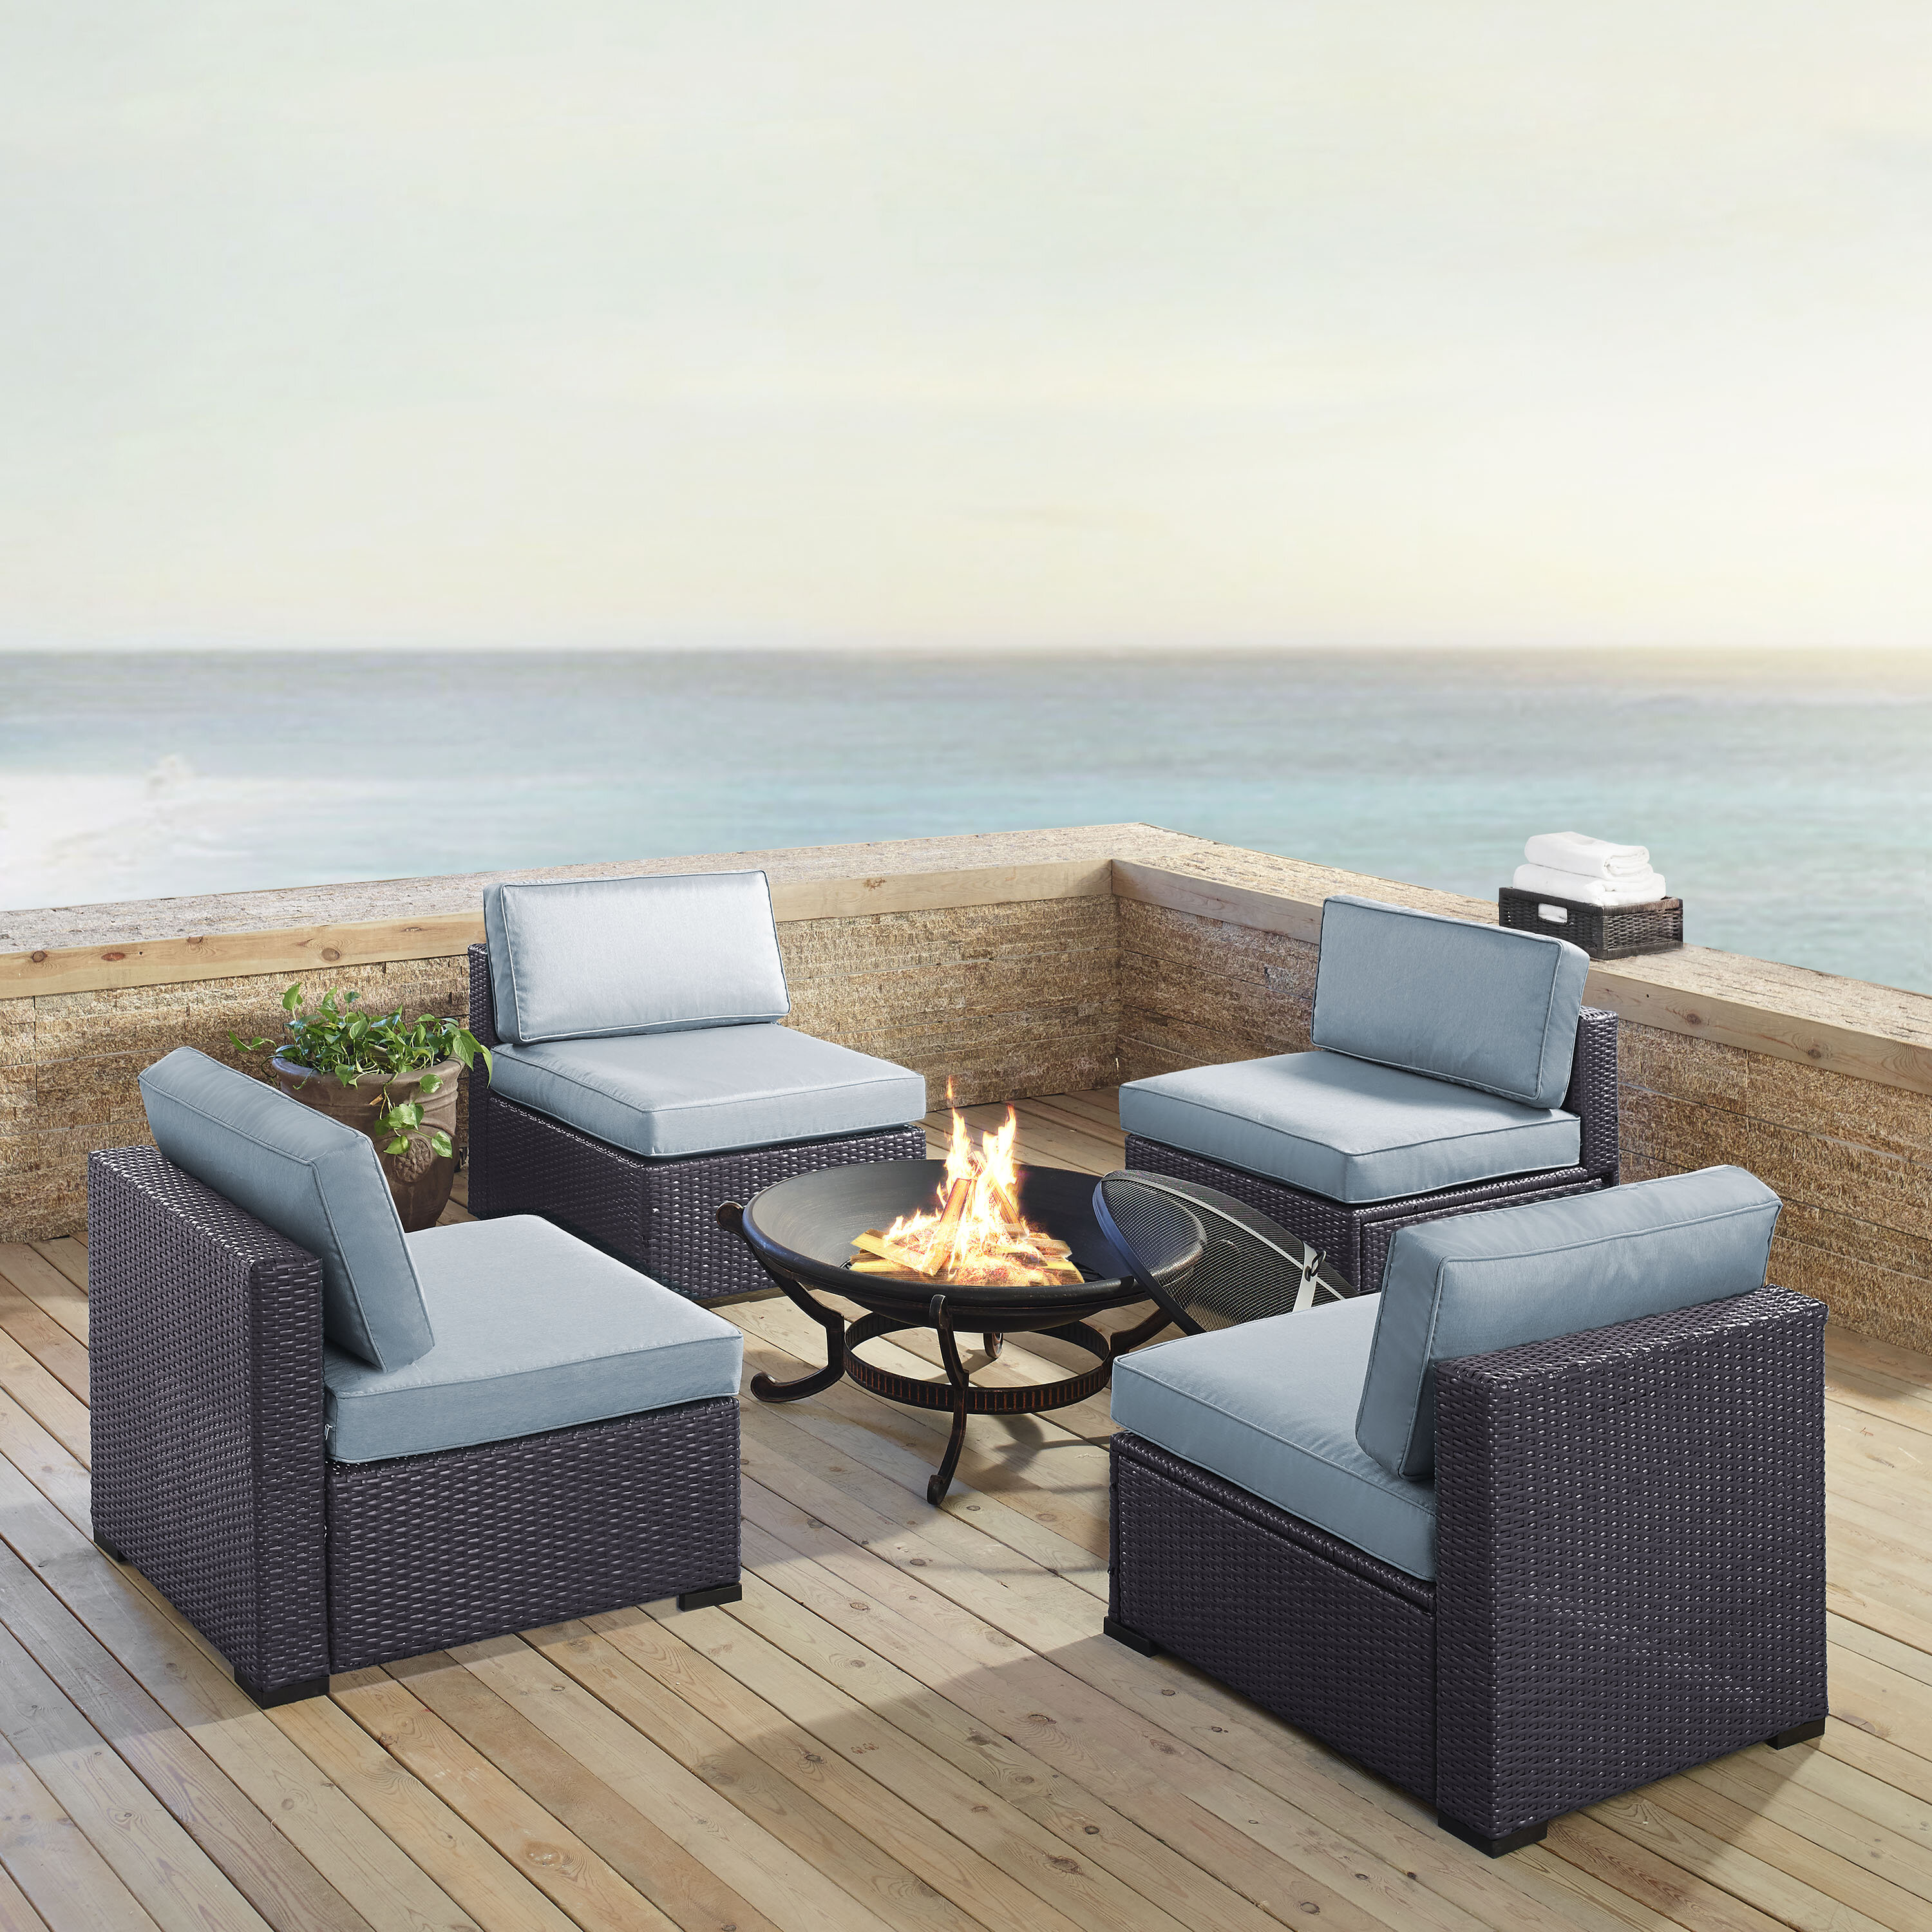 Birch Lane Lawson 5 Piece Rattan 2 Person Seating Group With Cushions Reviews Wayfair